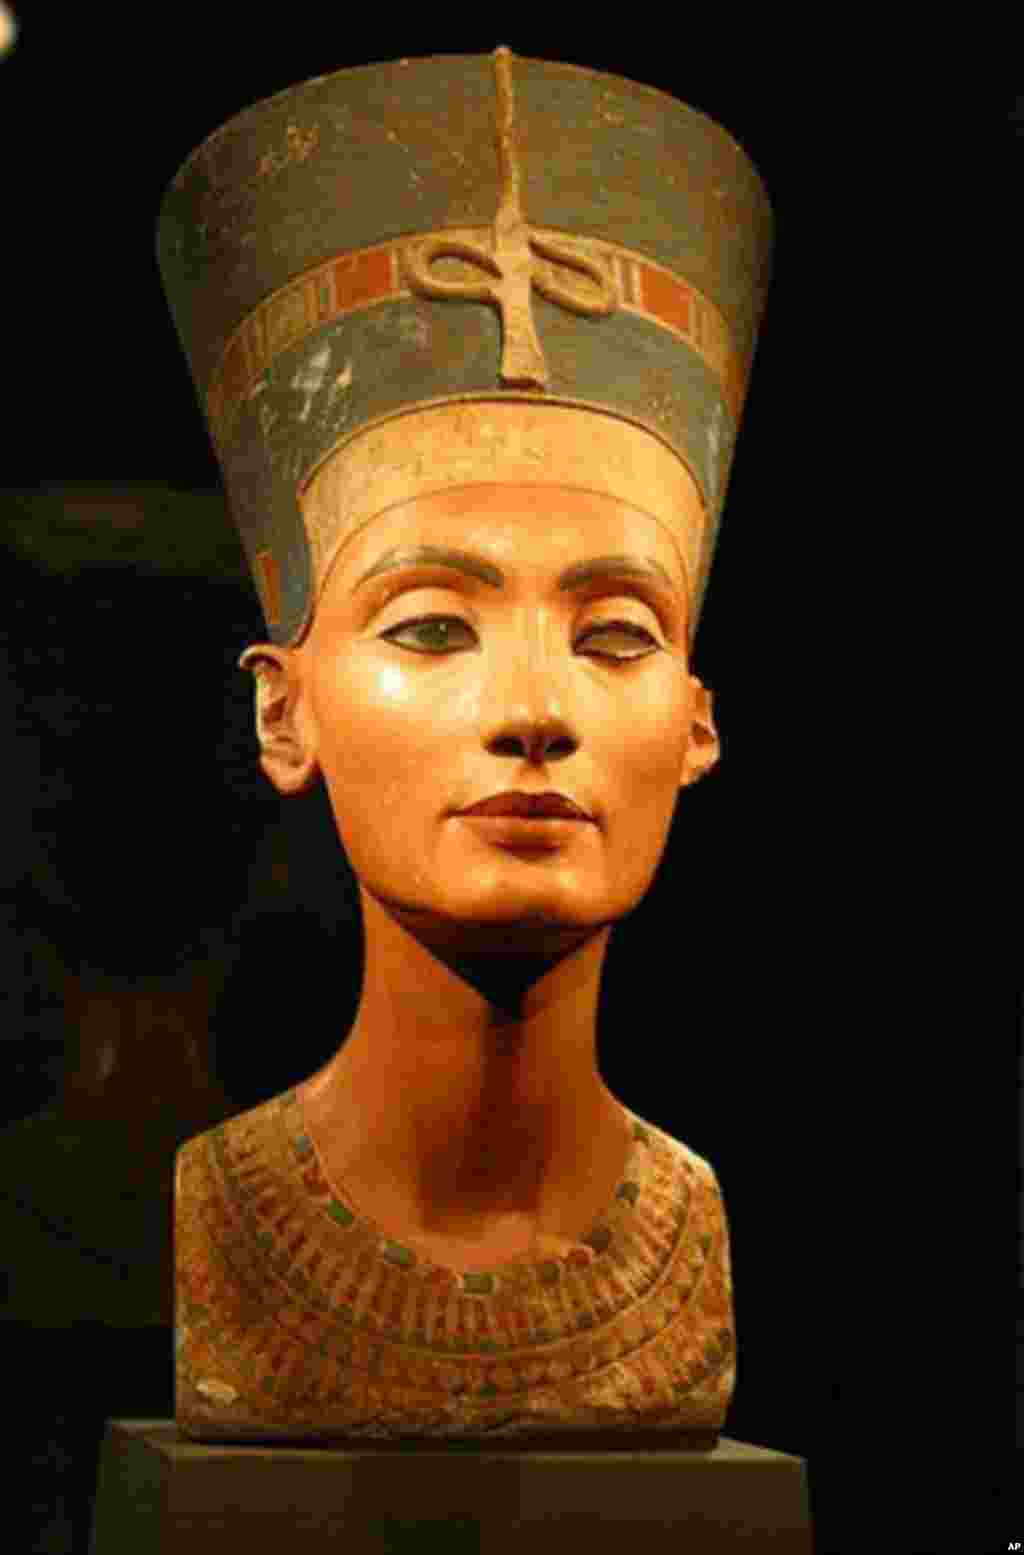 The Bust of Nefertiti, created in the 14th century B.C. in Egypt, resides in the Neues Museum in Berlin, Germany.